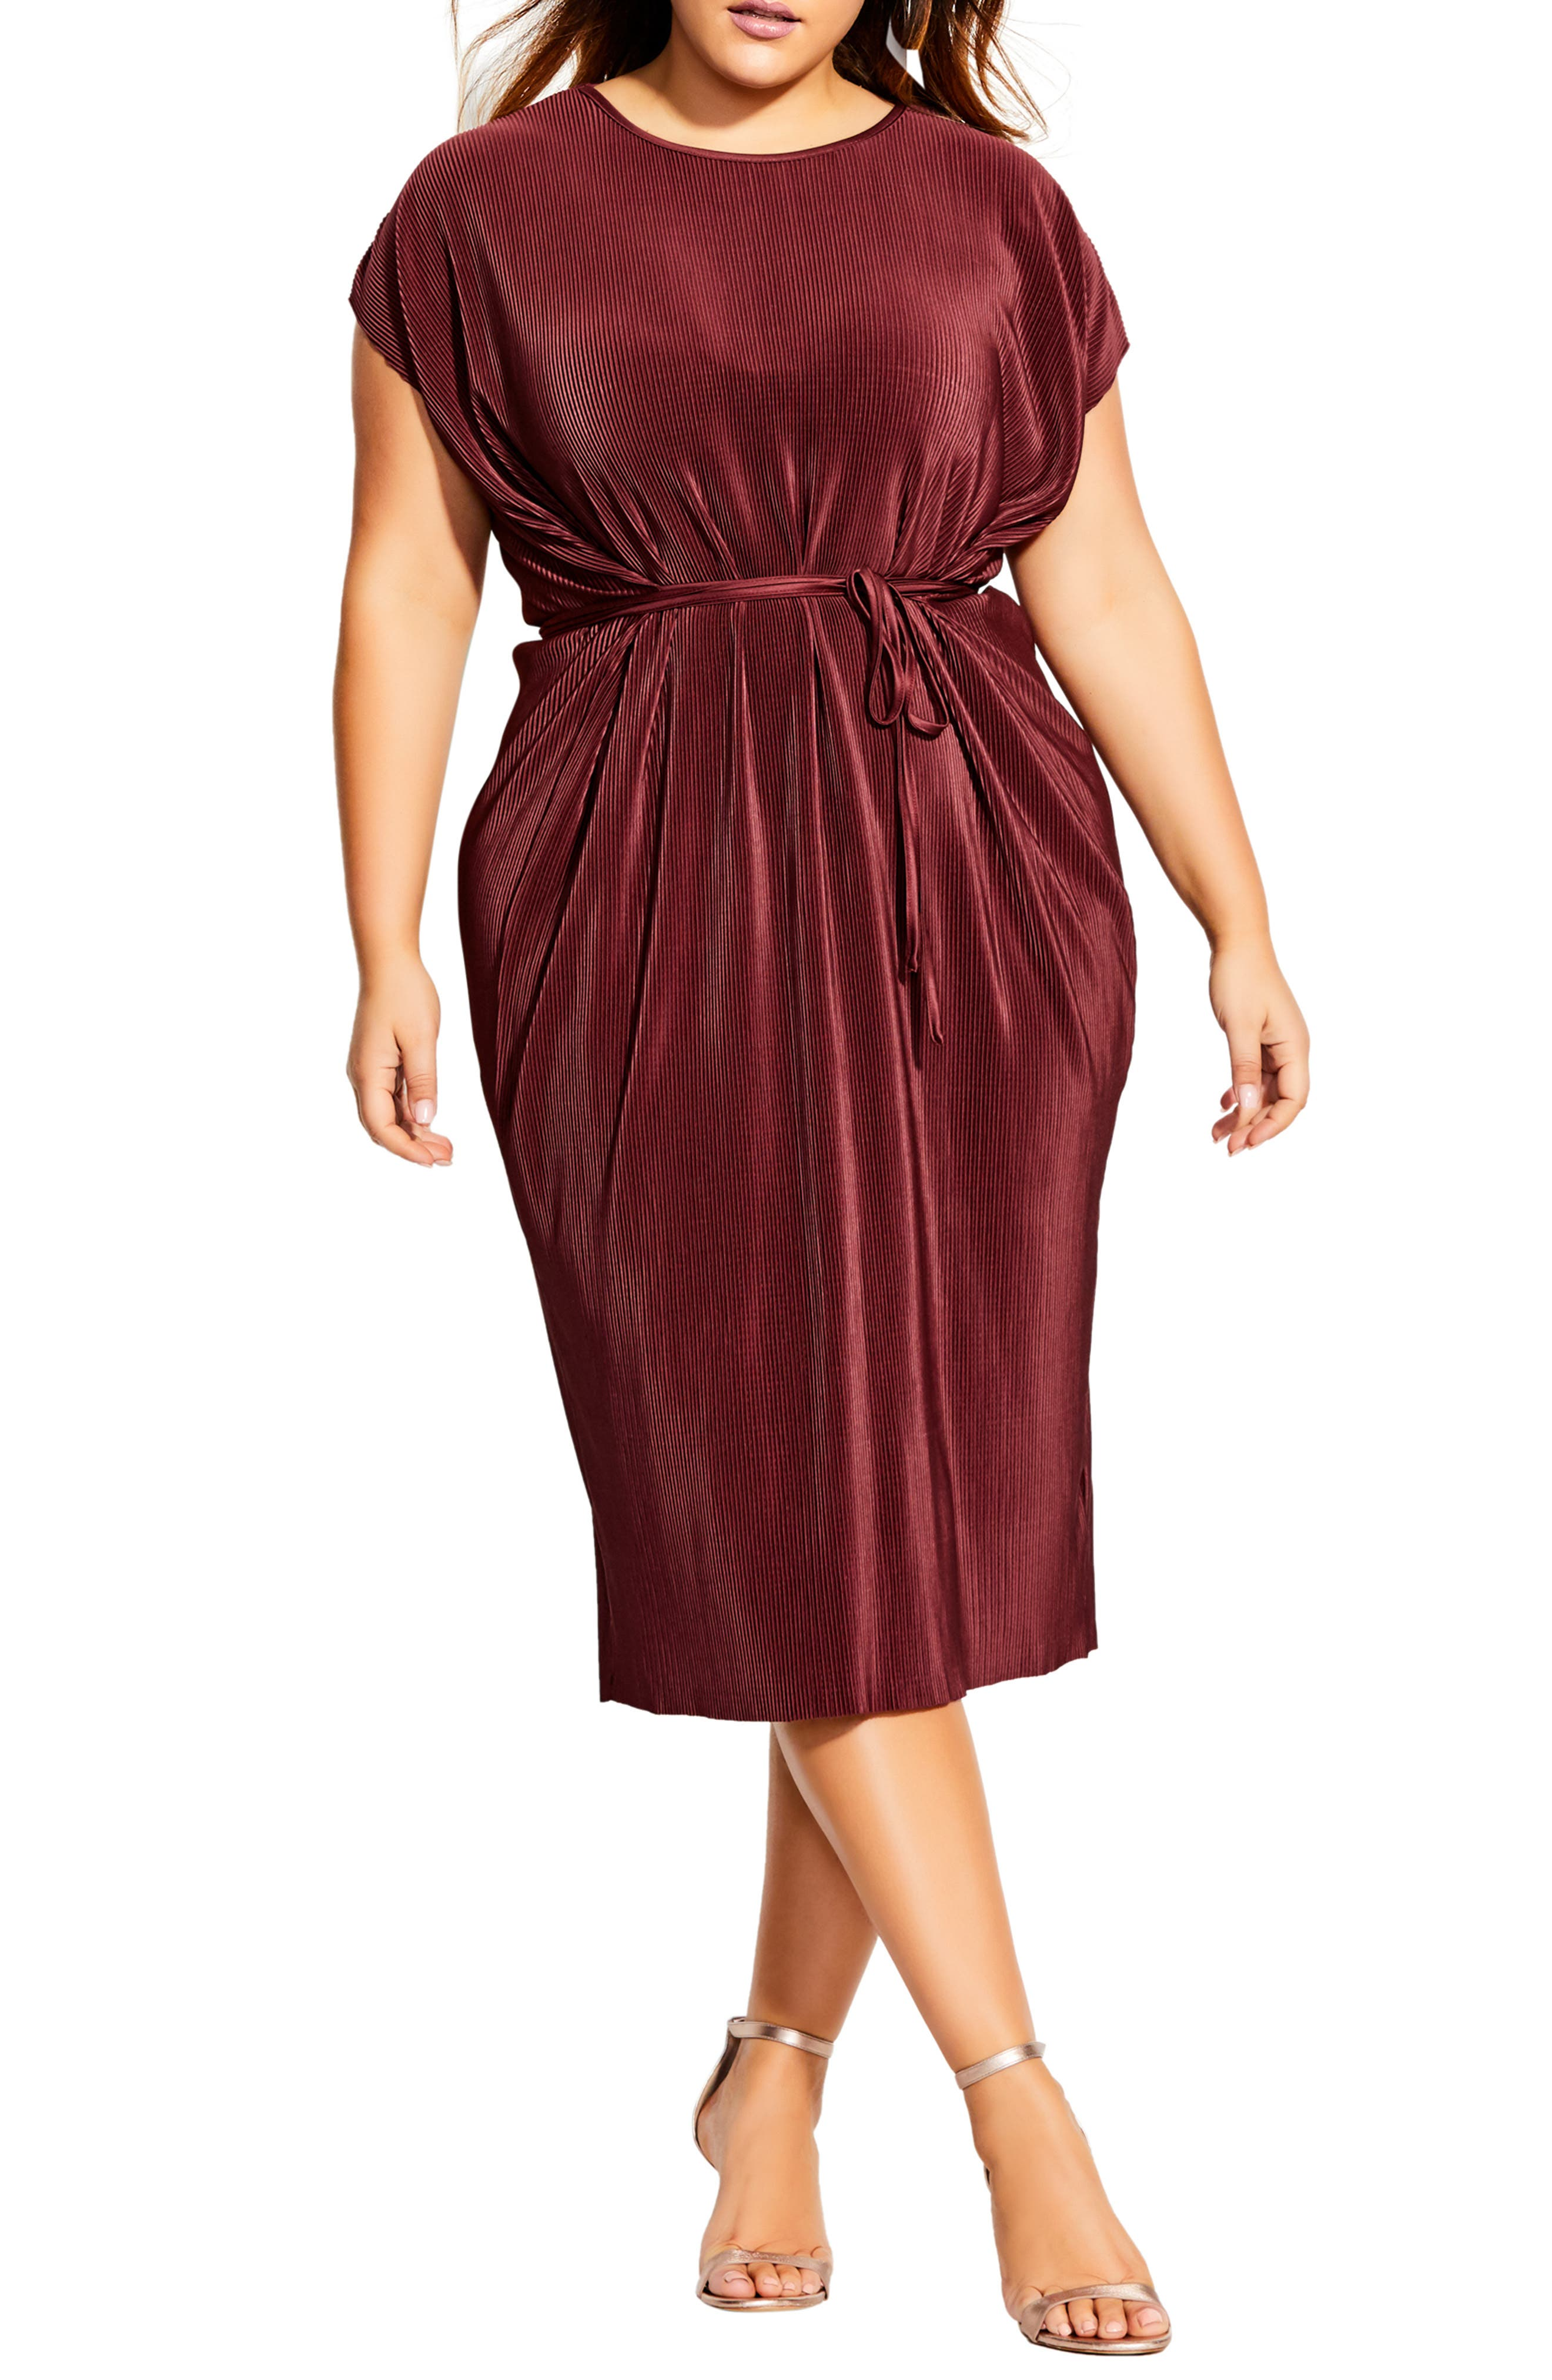 70s Prom, Formal, Evening, Party Dresses Plus Size Womens City Chic Pleated Midi Dress Size Large - Red $59.40 AT vintagedancer.com